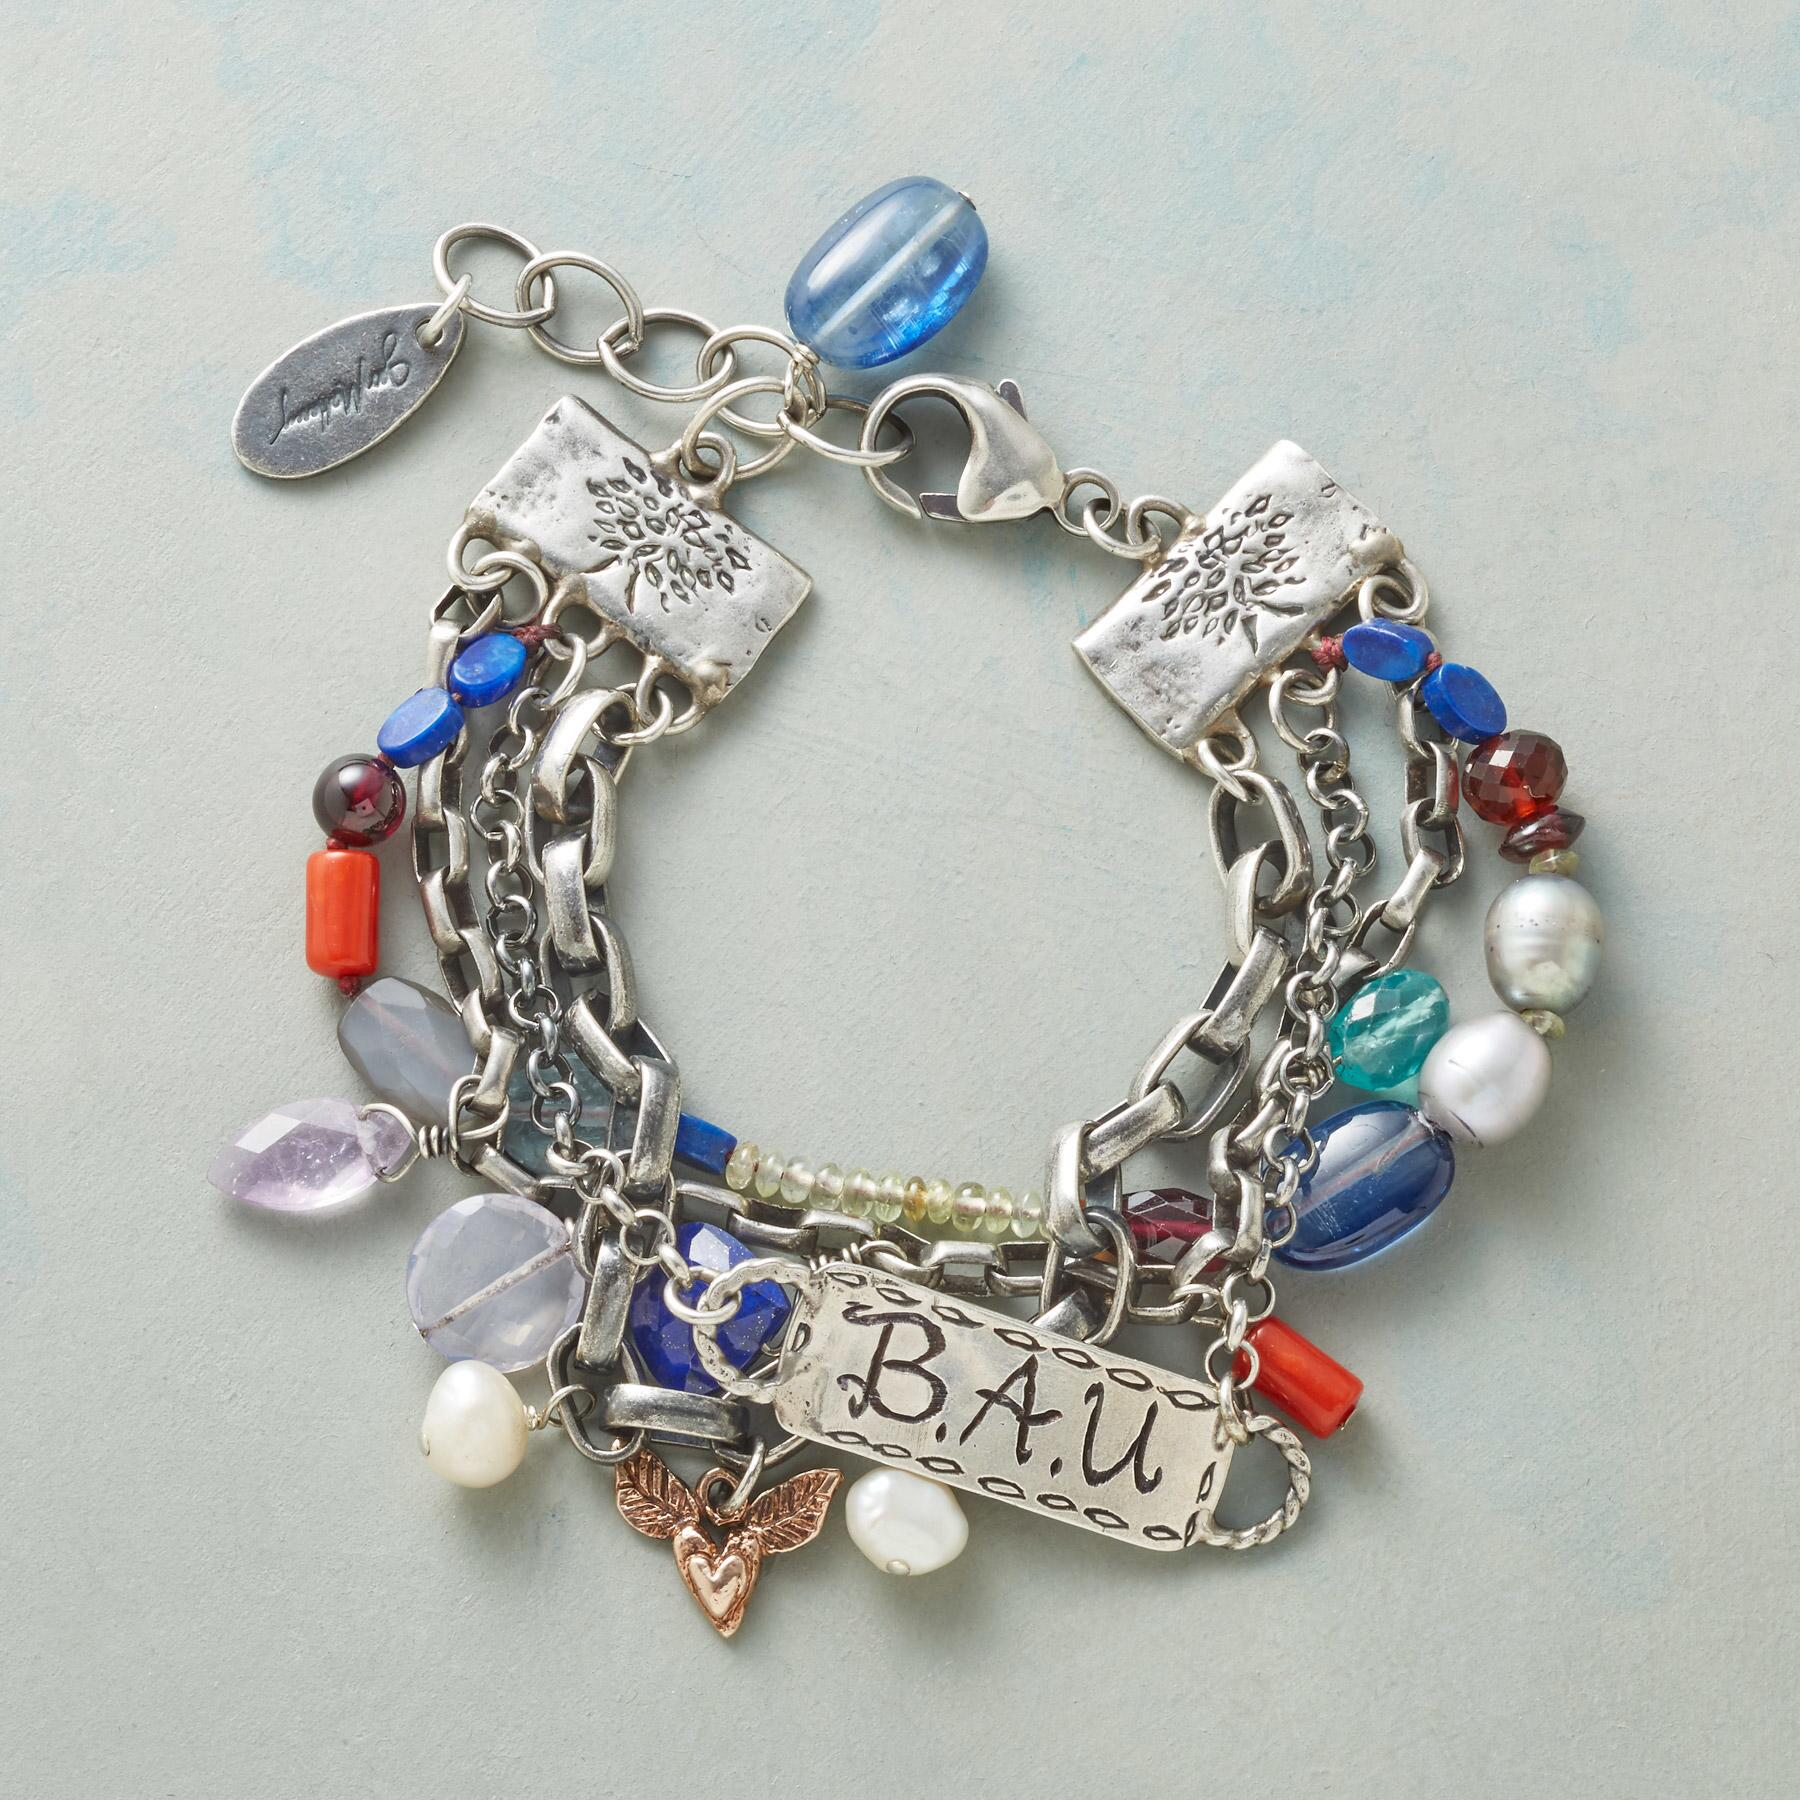 HEARTFELT PERSONALIZED BRACELET: View 1